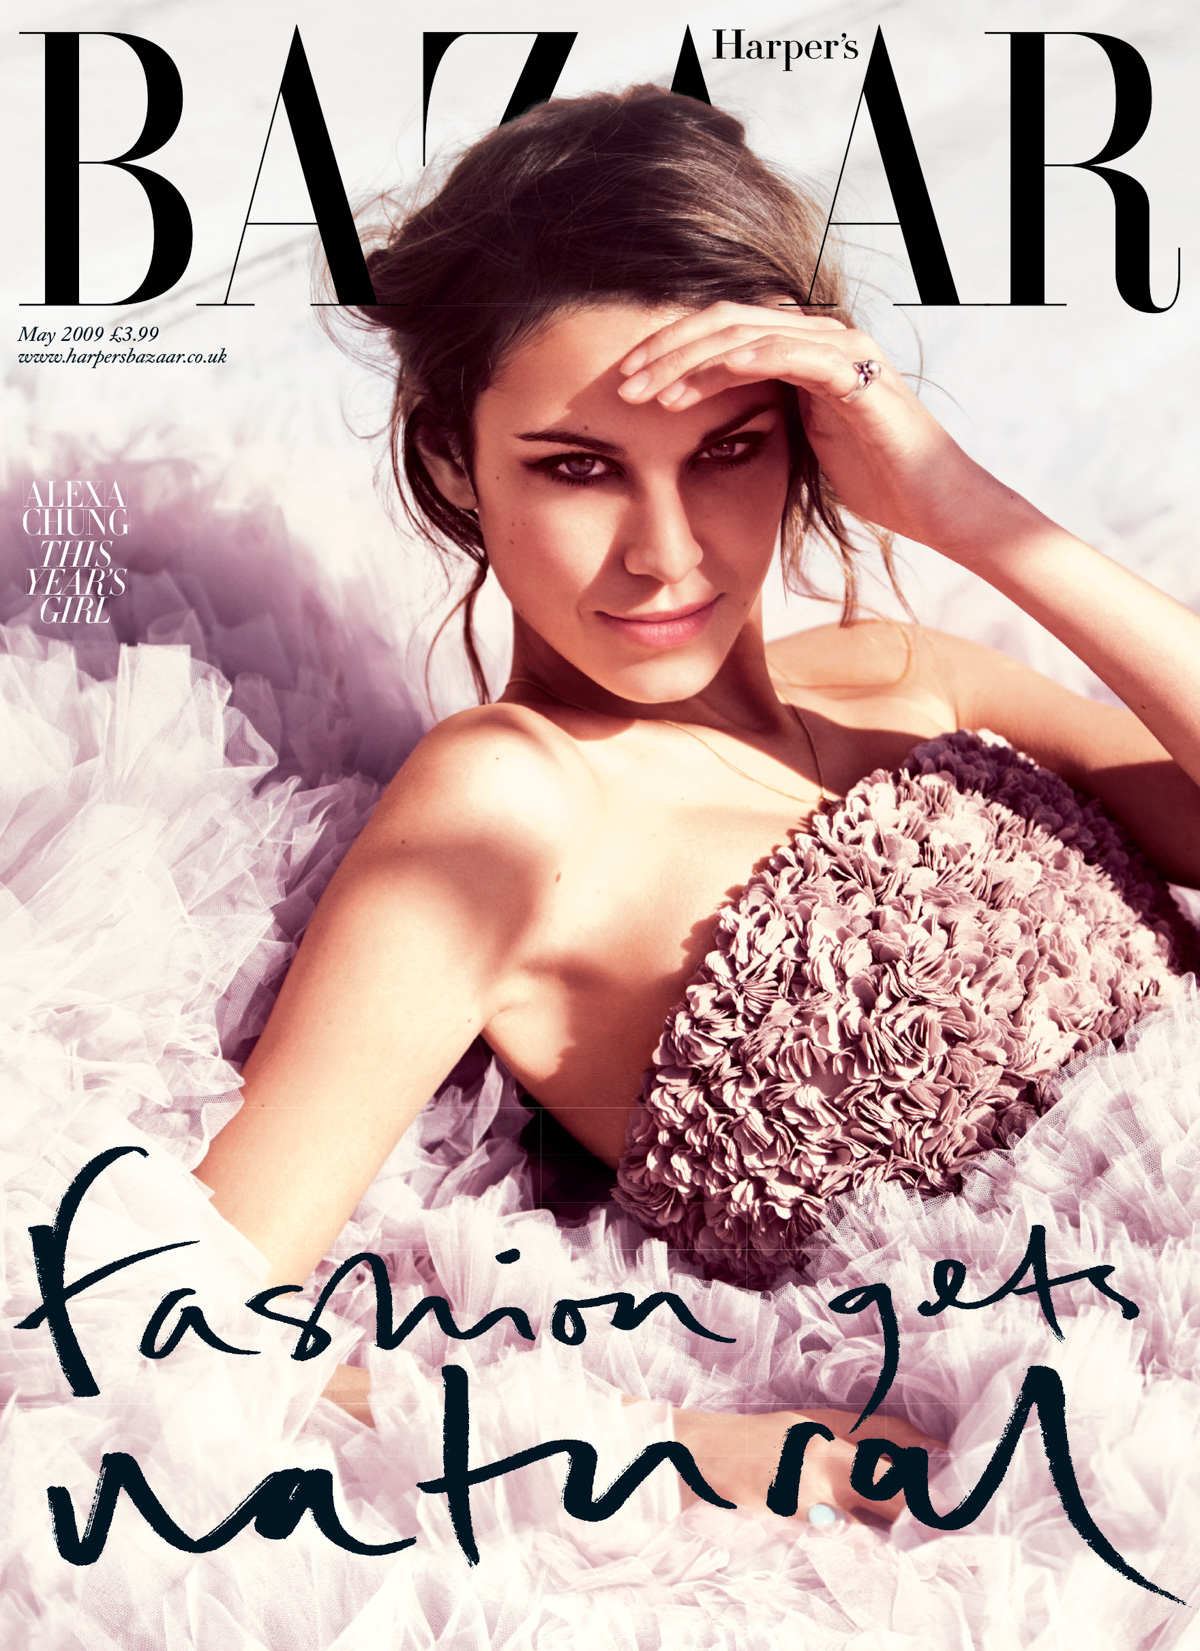 house-of-usher-harpers-bazaar-magazine-24